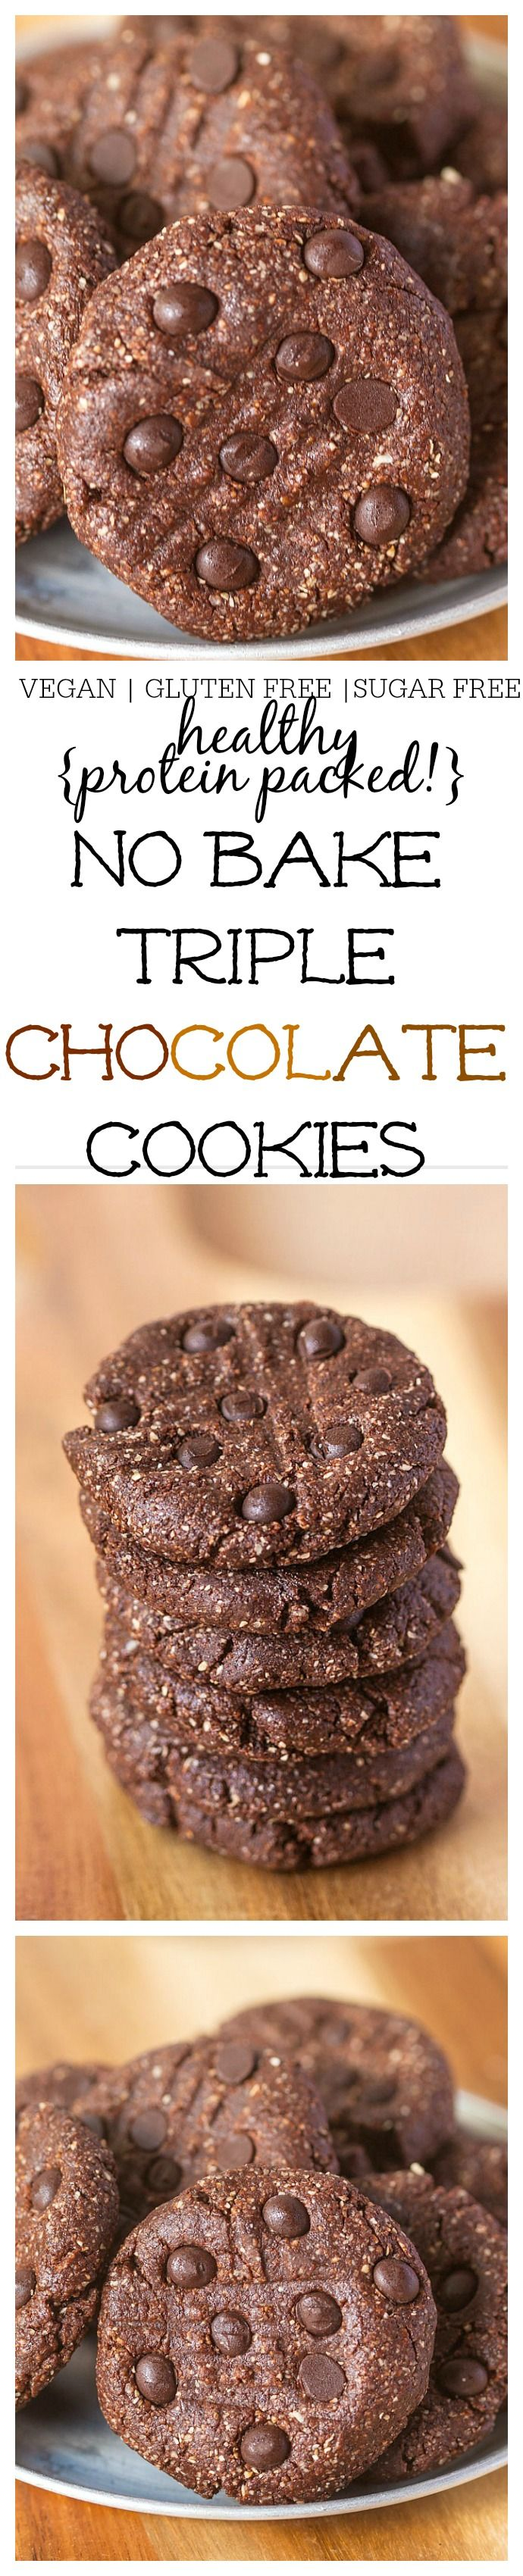 Healthy No Bake Triple Chocolate {Protein Packed!} Cookies- Ready in 10 minutes FLAT, these are so chewy and fudgy! {Vegan, gluten free options!} - thebigmansworld.com